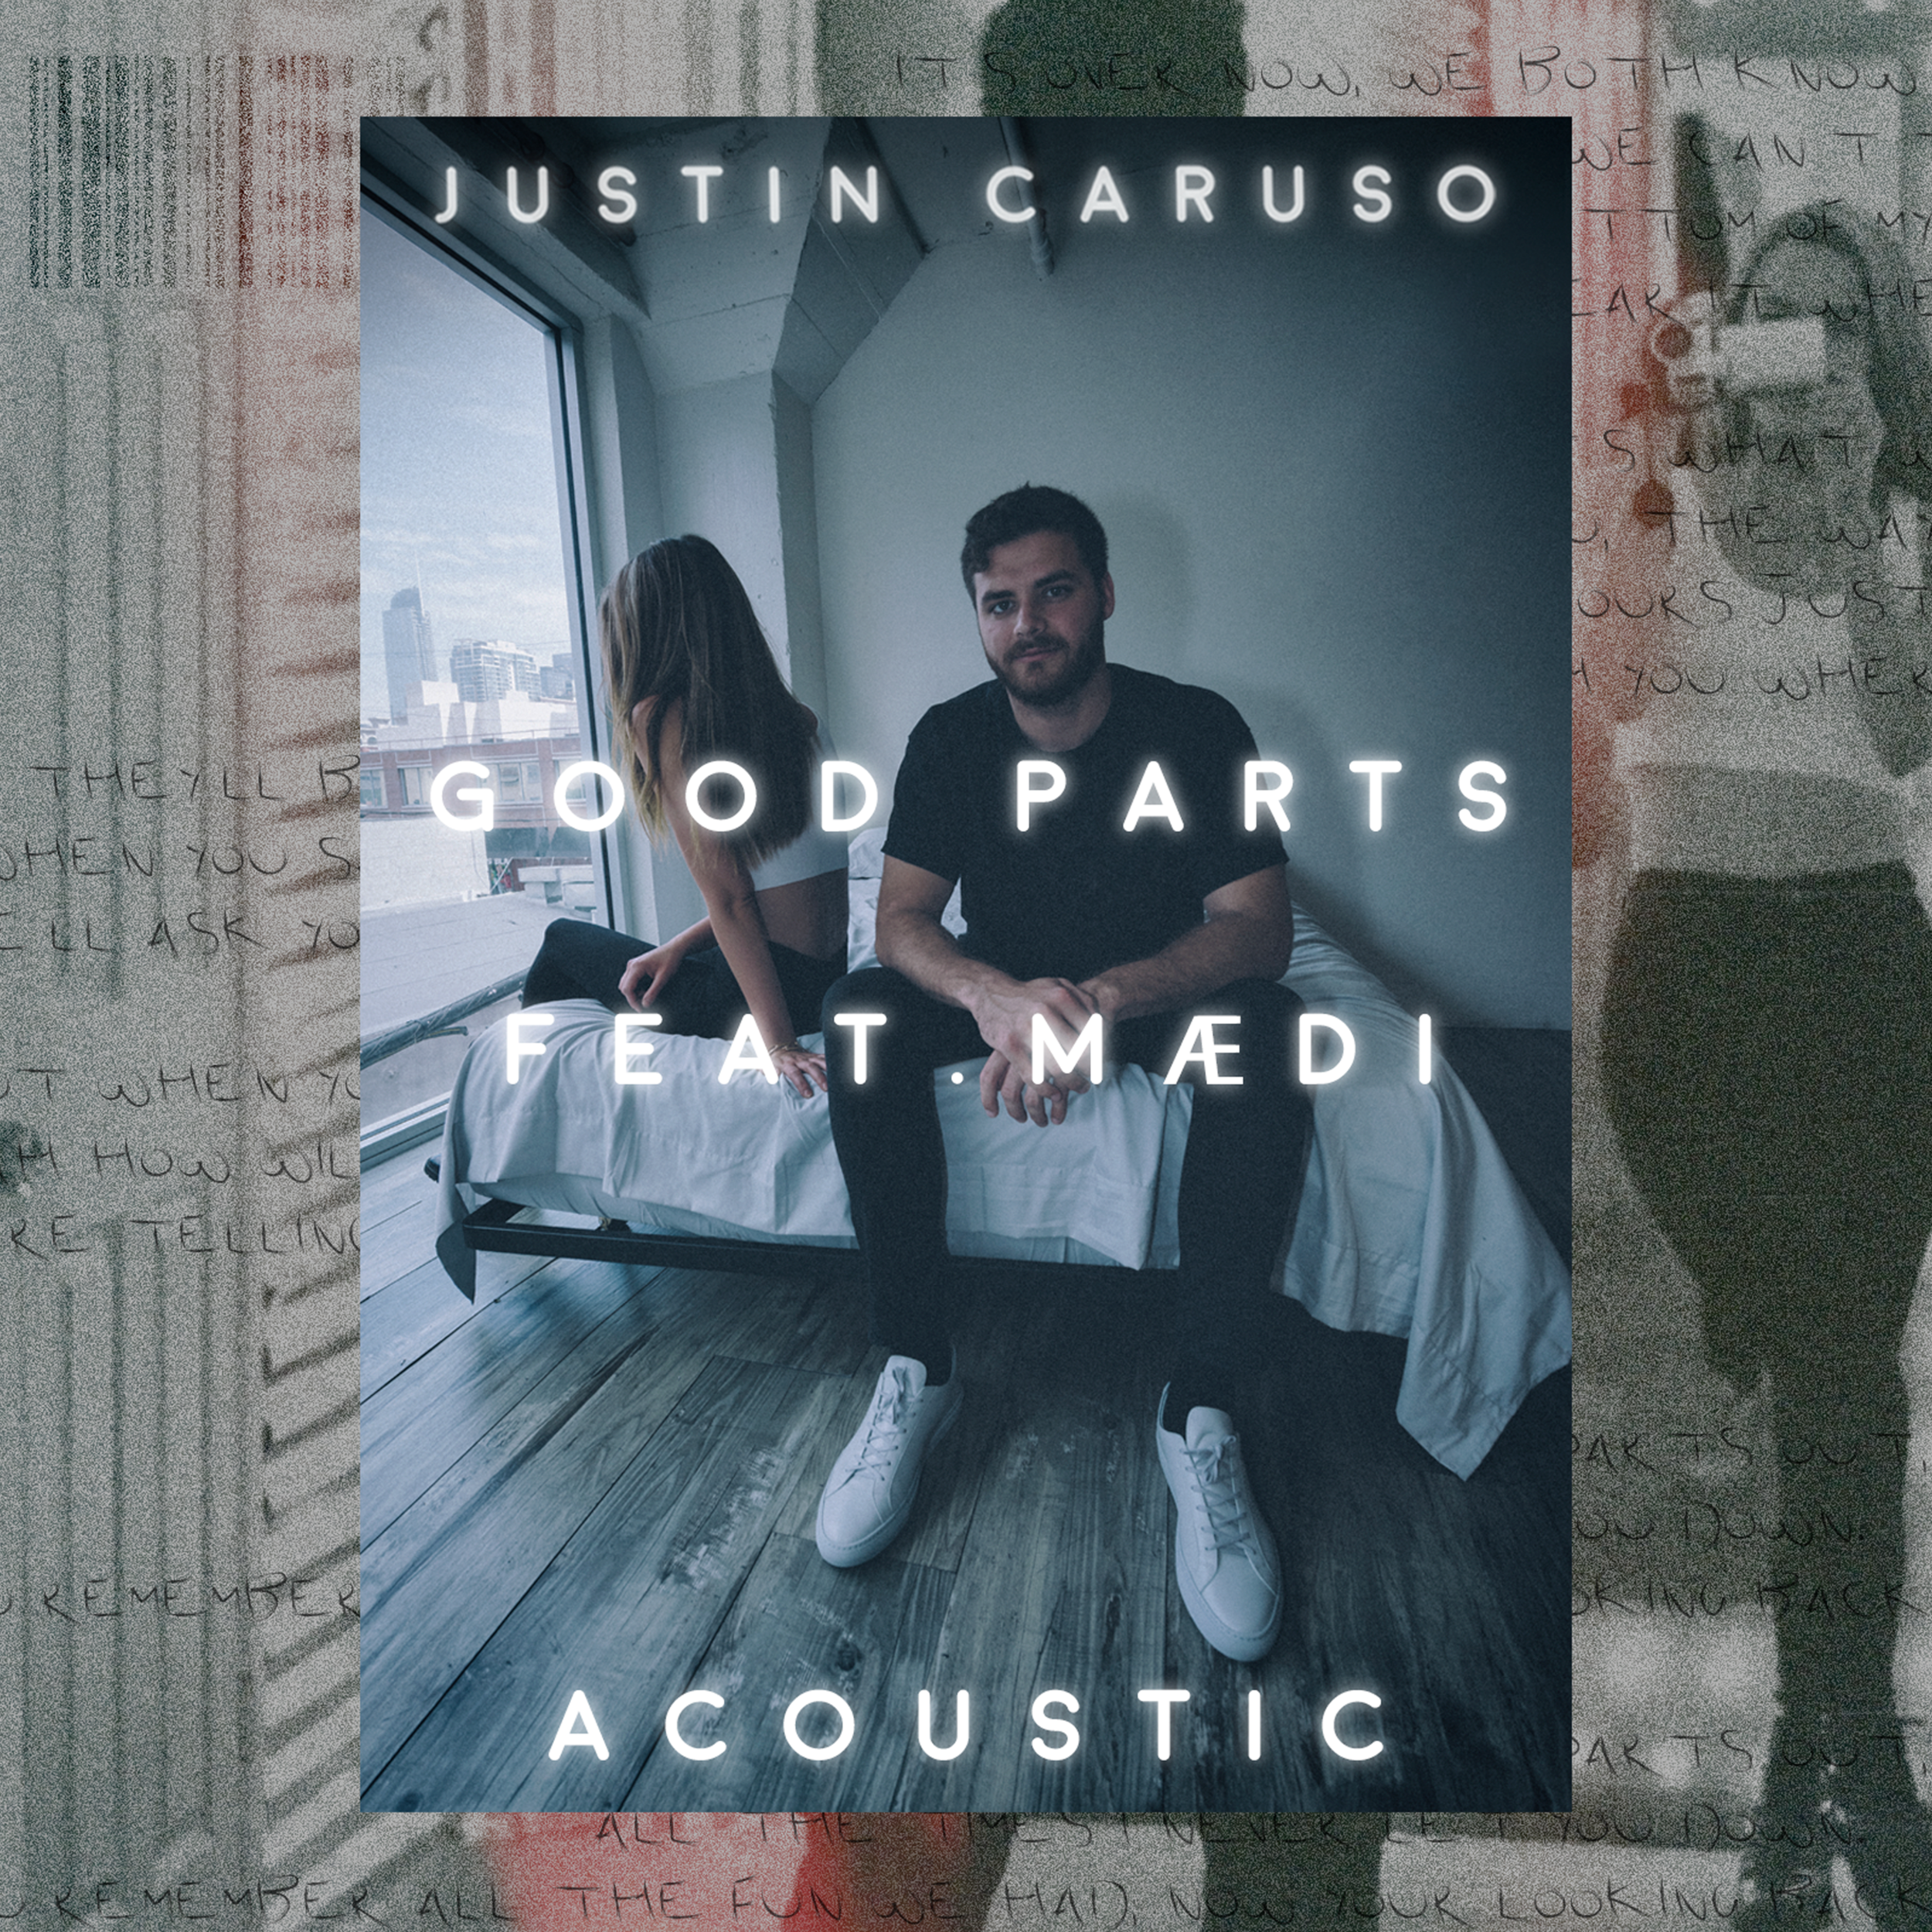 Good Parts (Acoustic Version) - Justin Caruso feat. Mædi